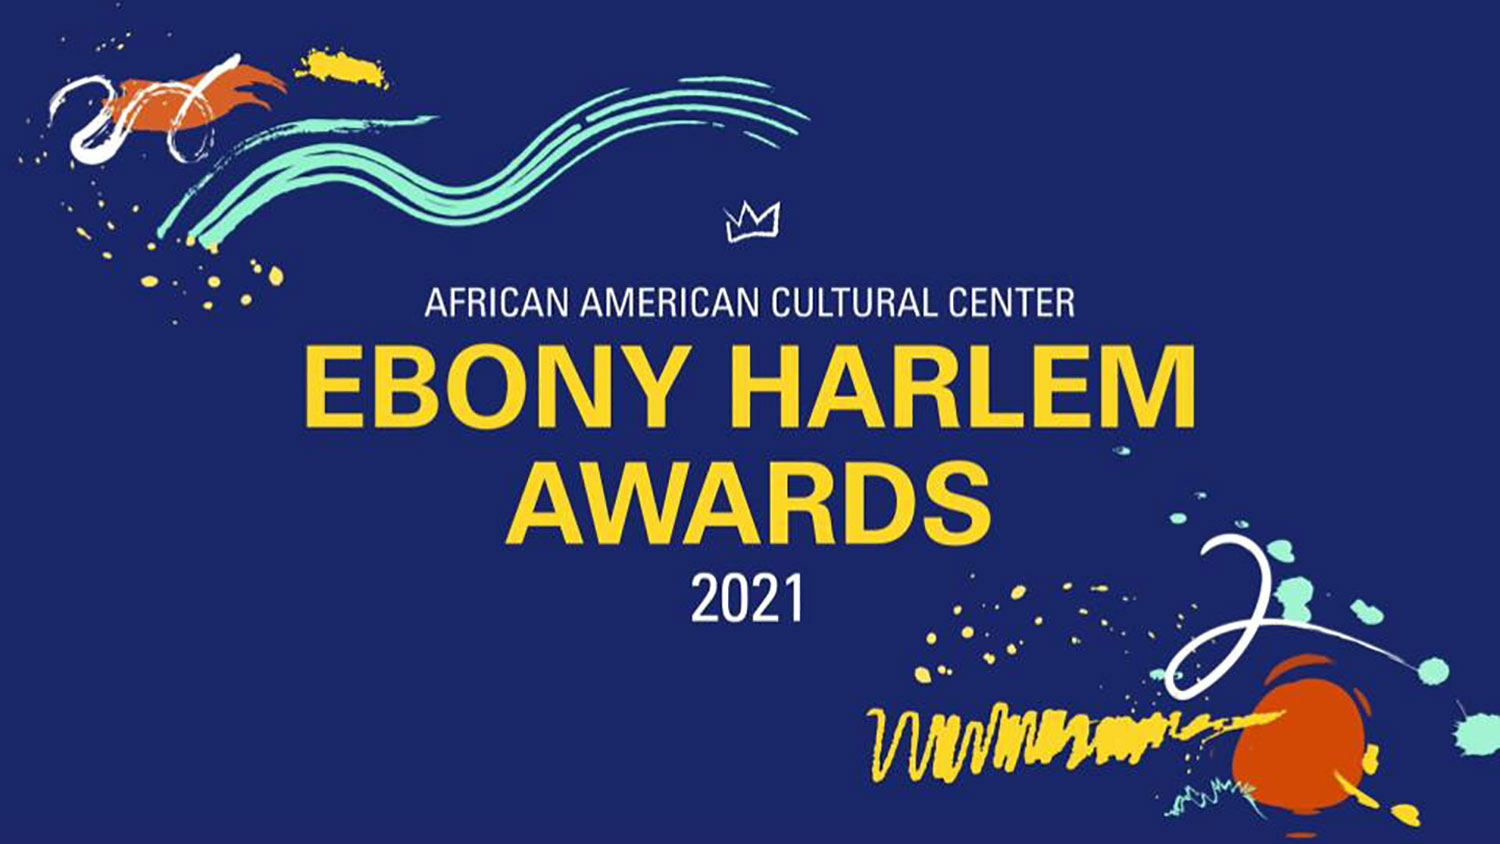 Ebony Harlem Awards 2021